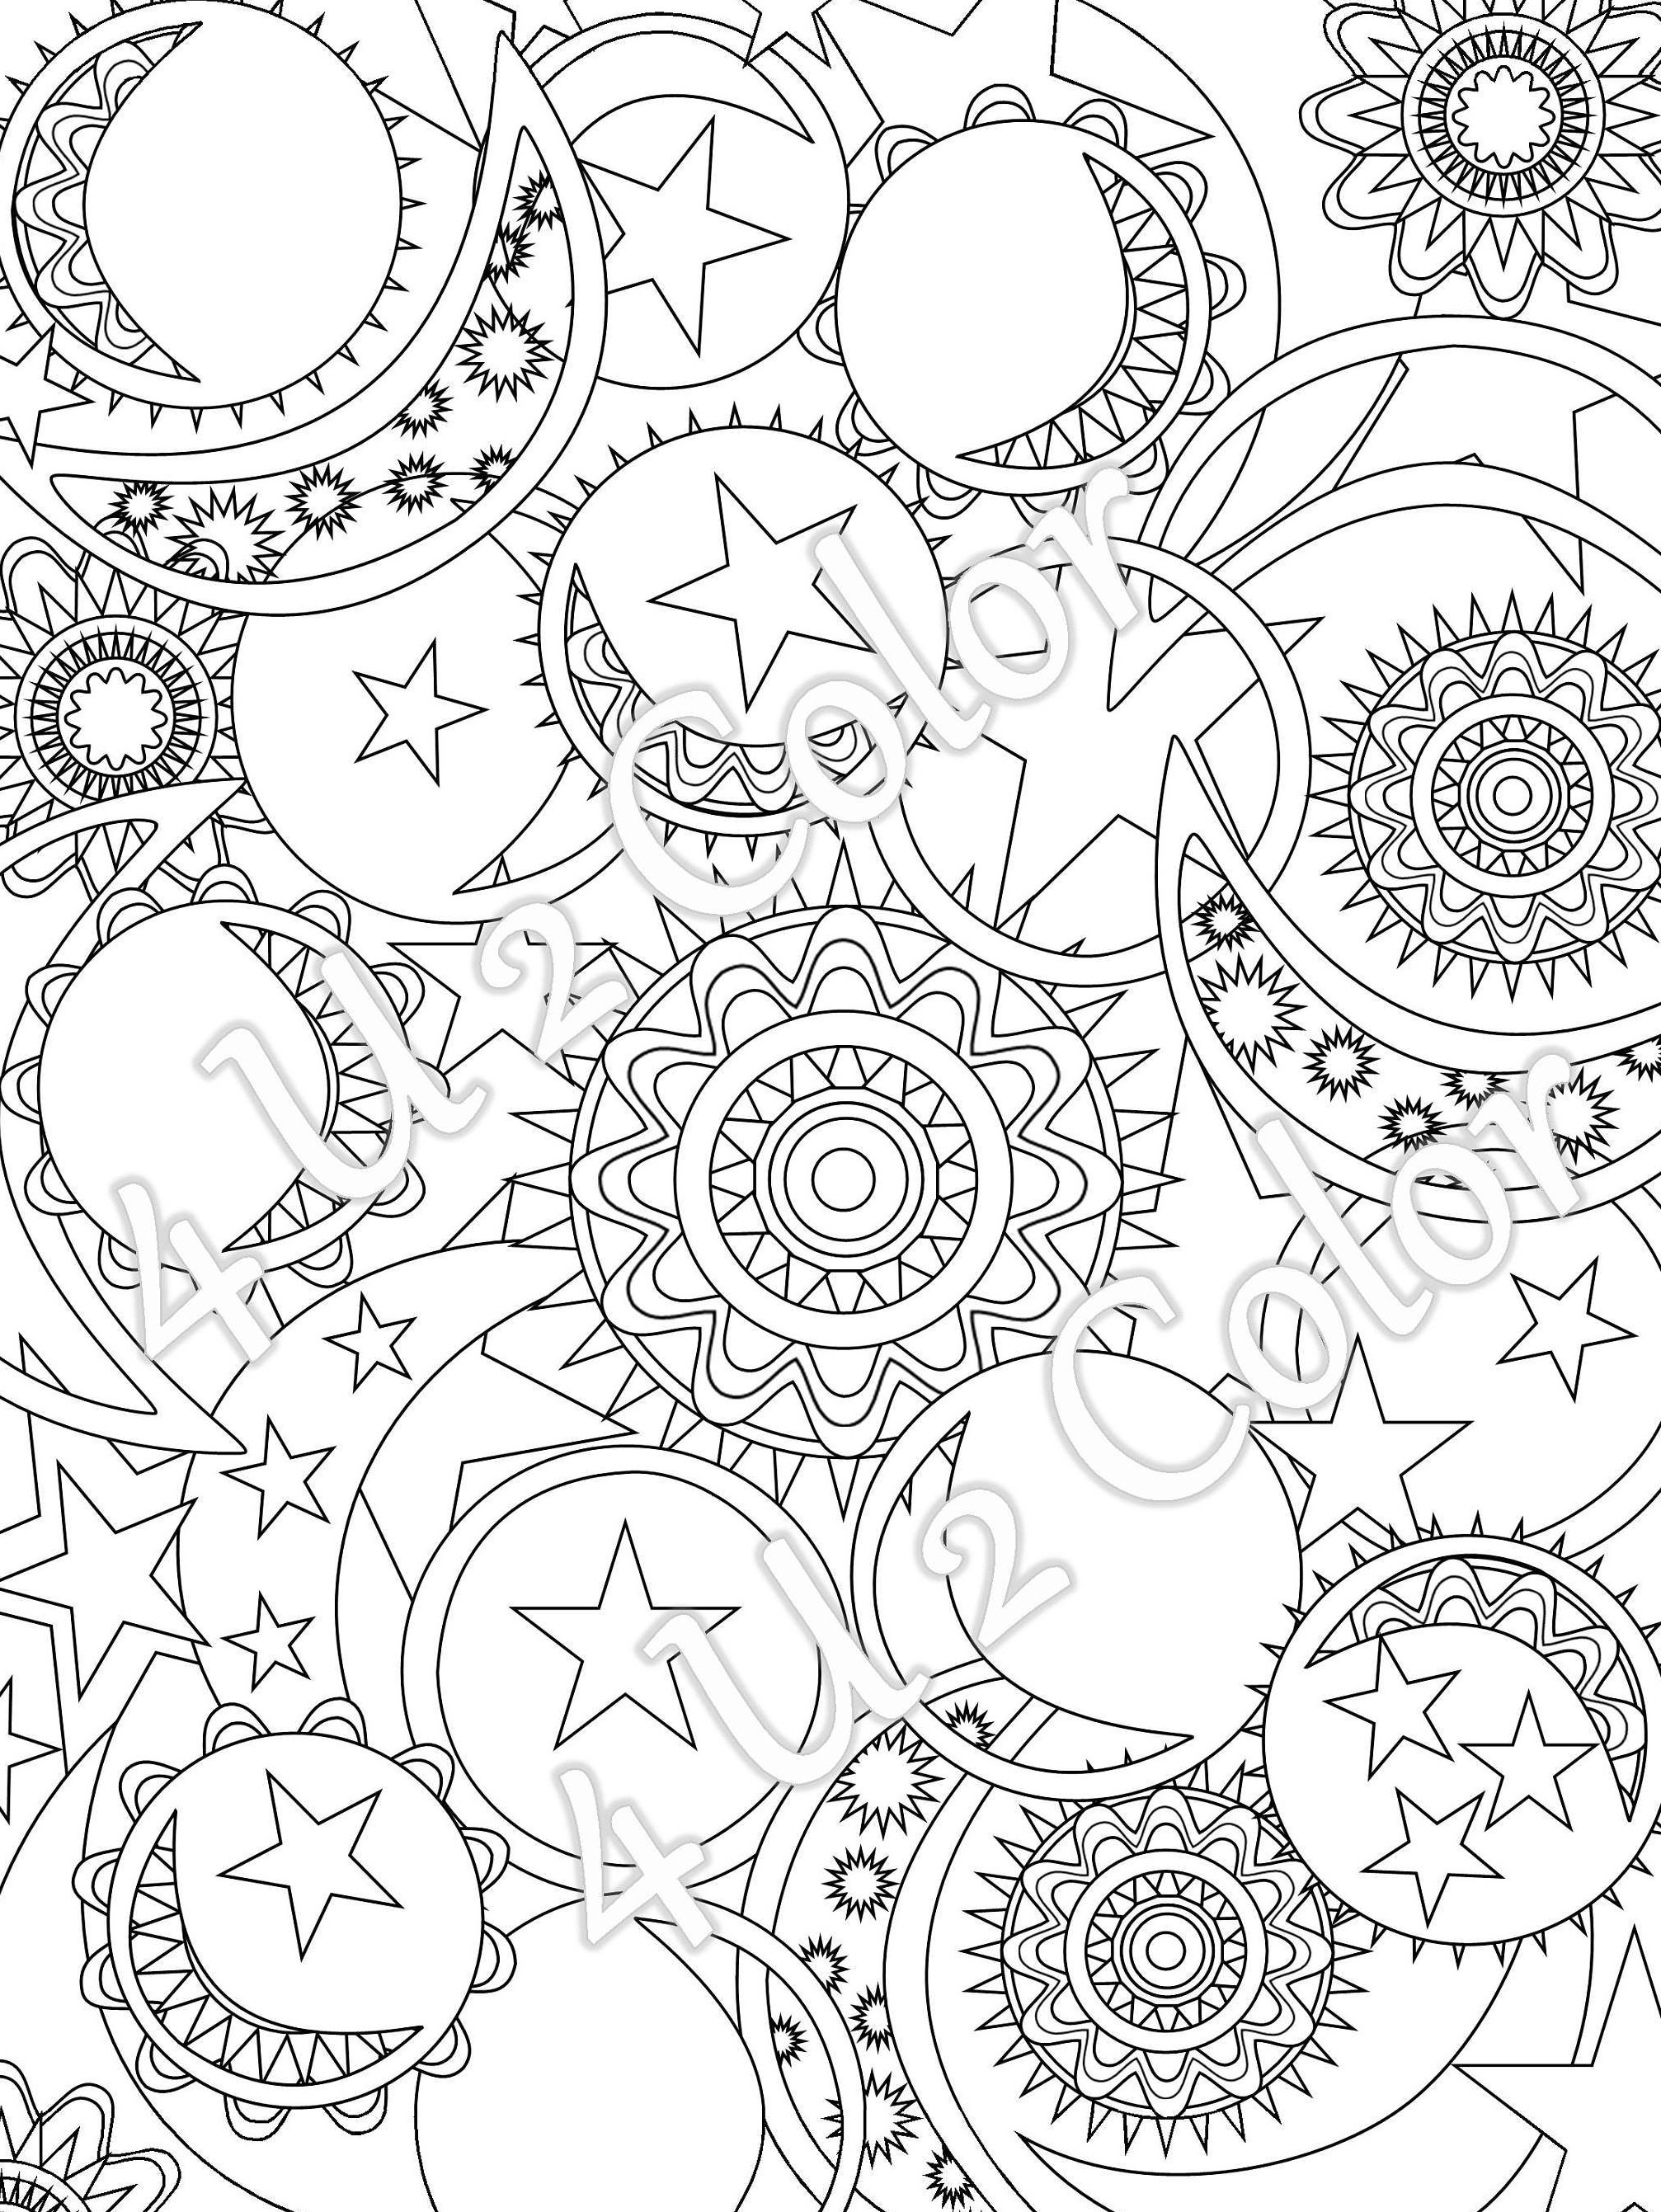 coloring pages sun and moon sun moon and stars coloring page at getcoloringscom and coloring moon sun pages